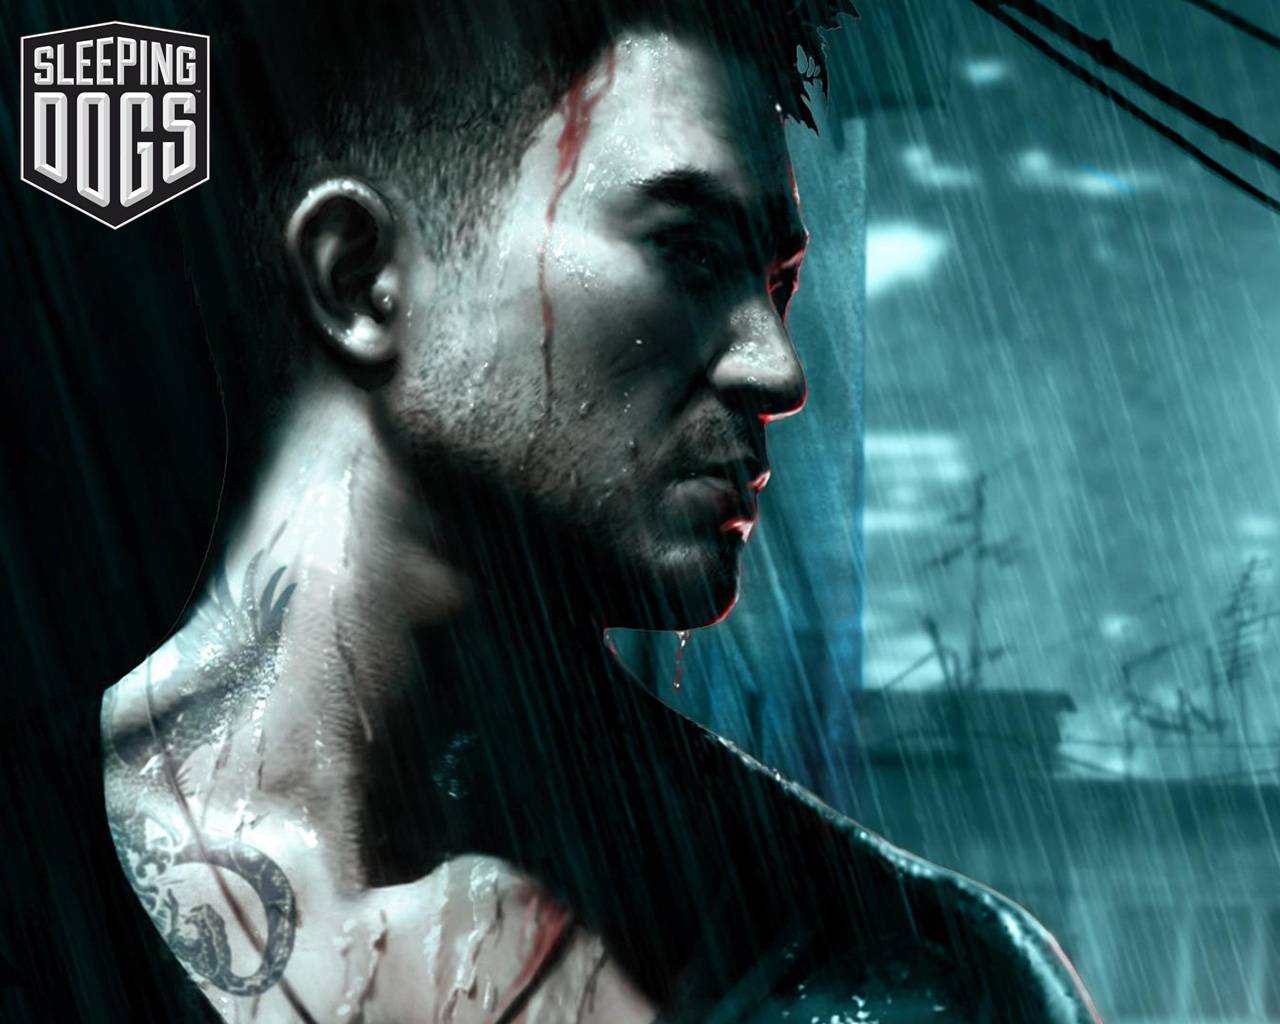 Sleeping Dogs Wallpapers in HD GamingBoltcom Video 1280x1024